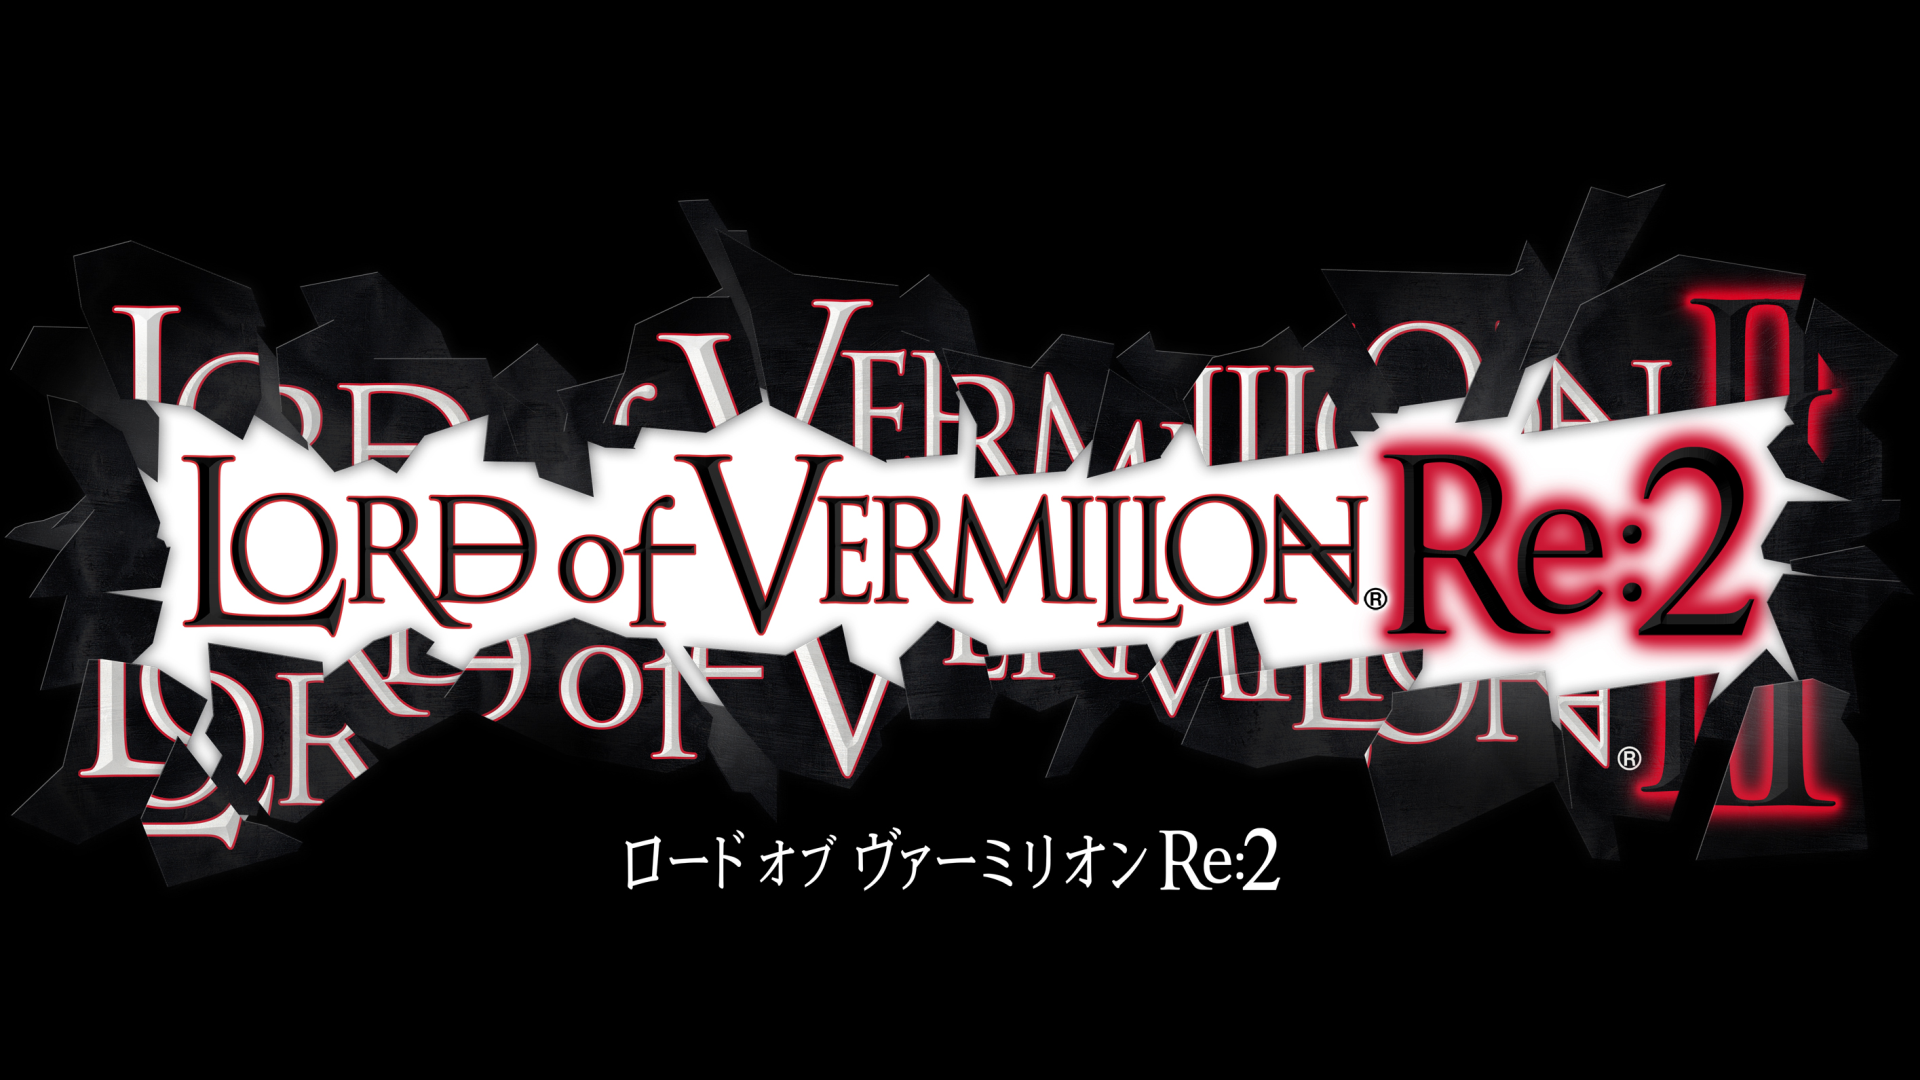 Lord of Vermilion Re:2 Logo